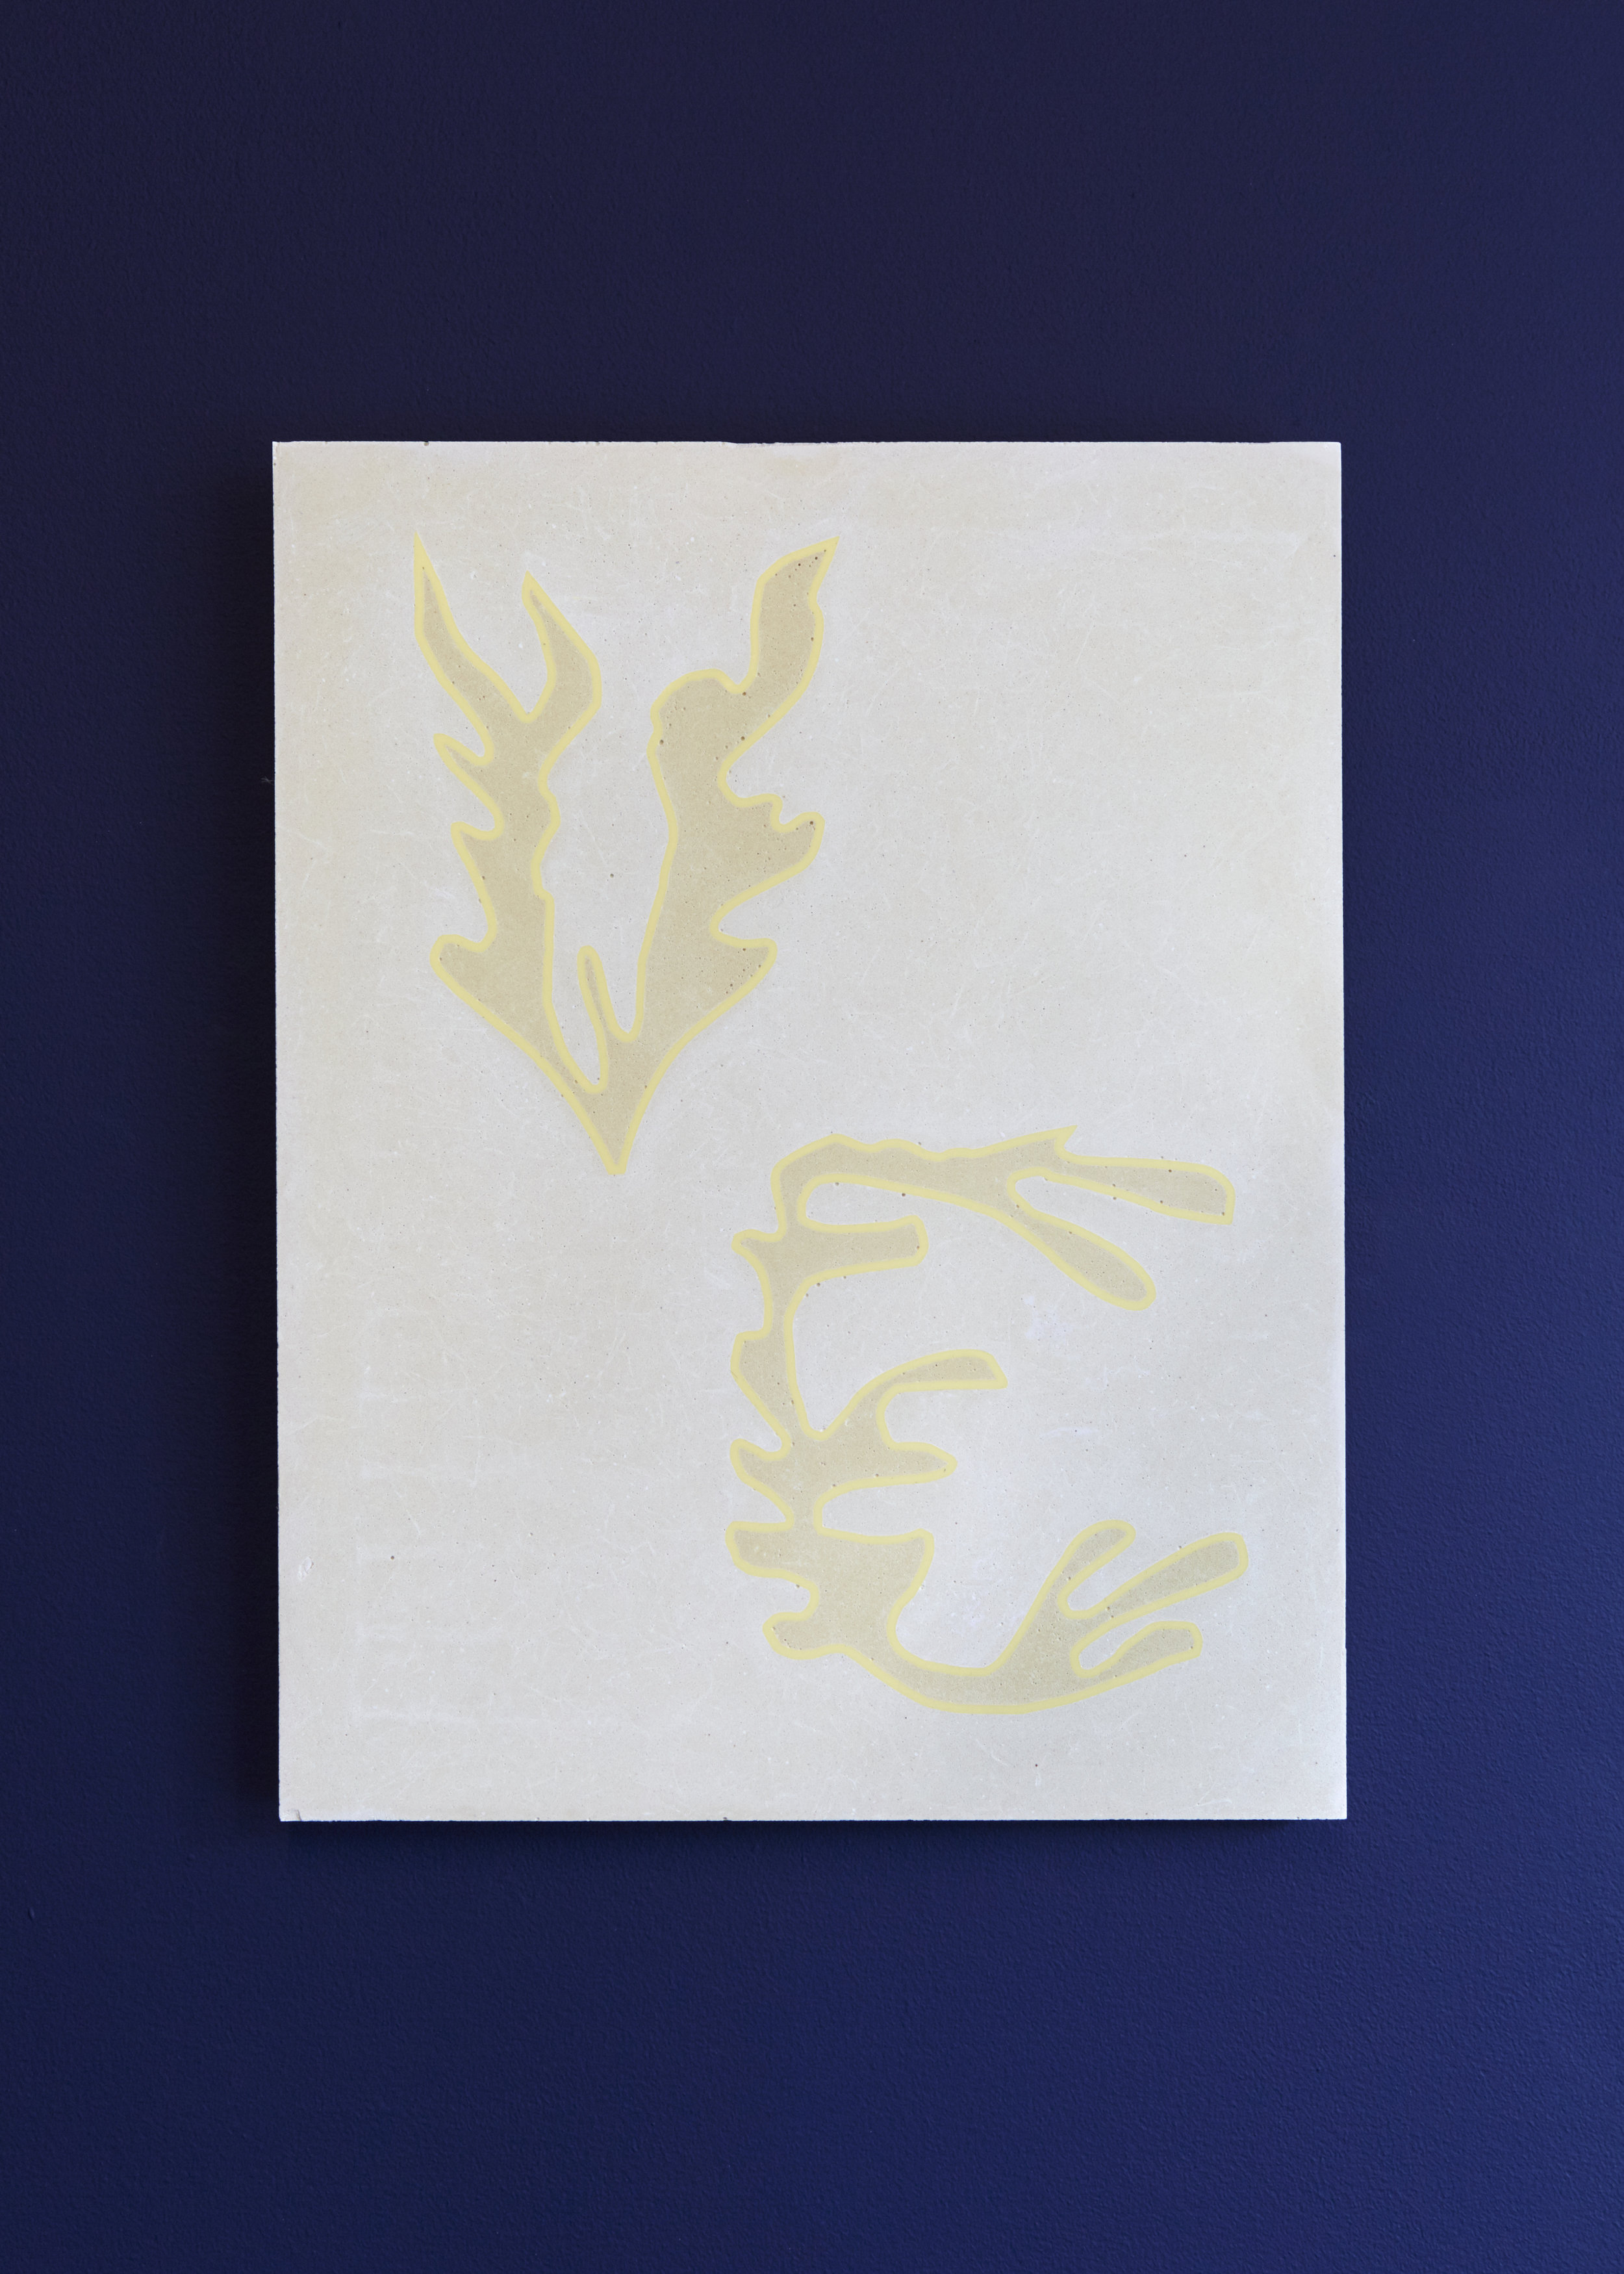 Flowers (after Matisse) I , 2019 Cast concrete panel with inlaid acrylic 44 x 34 x 2 cm